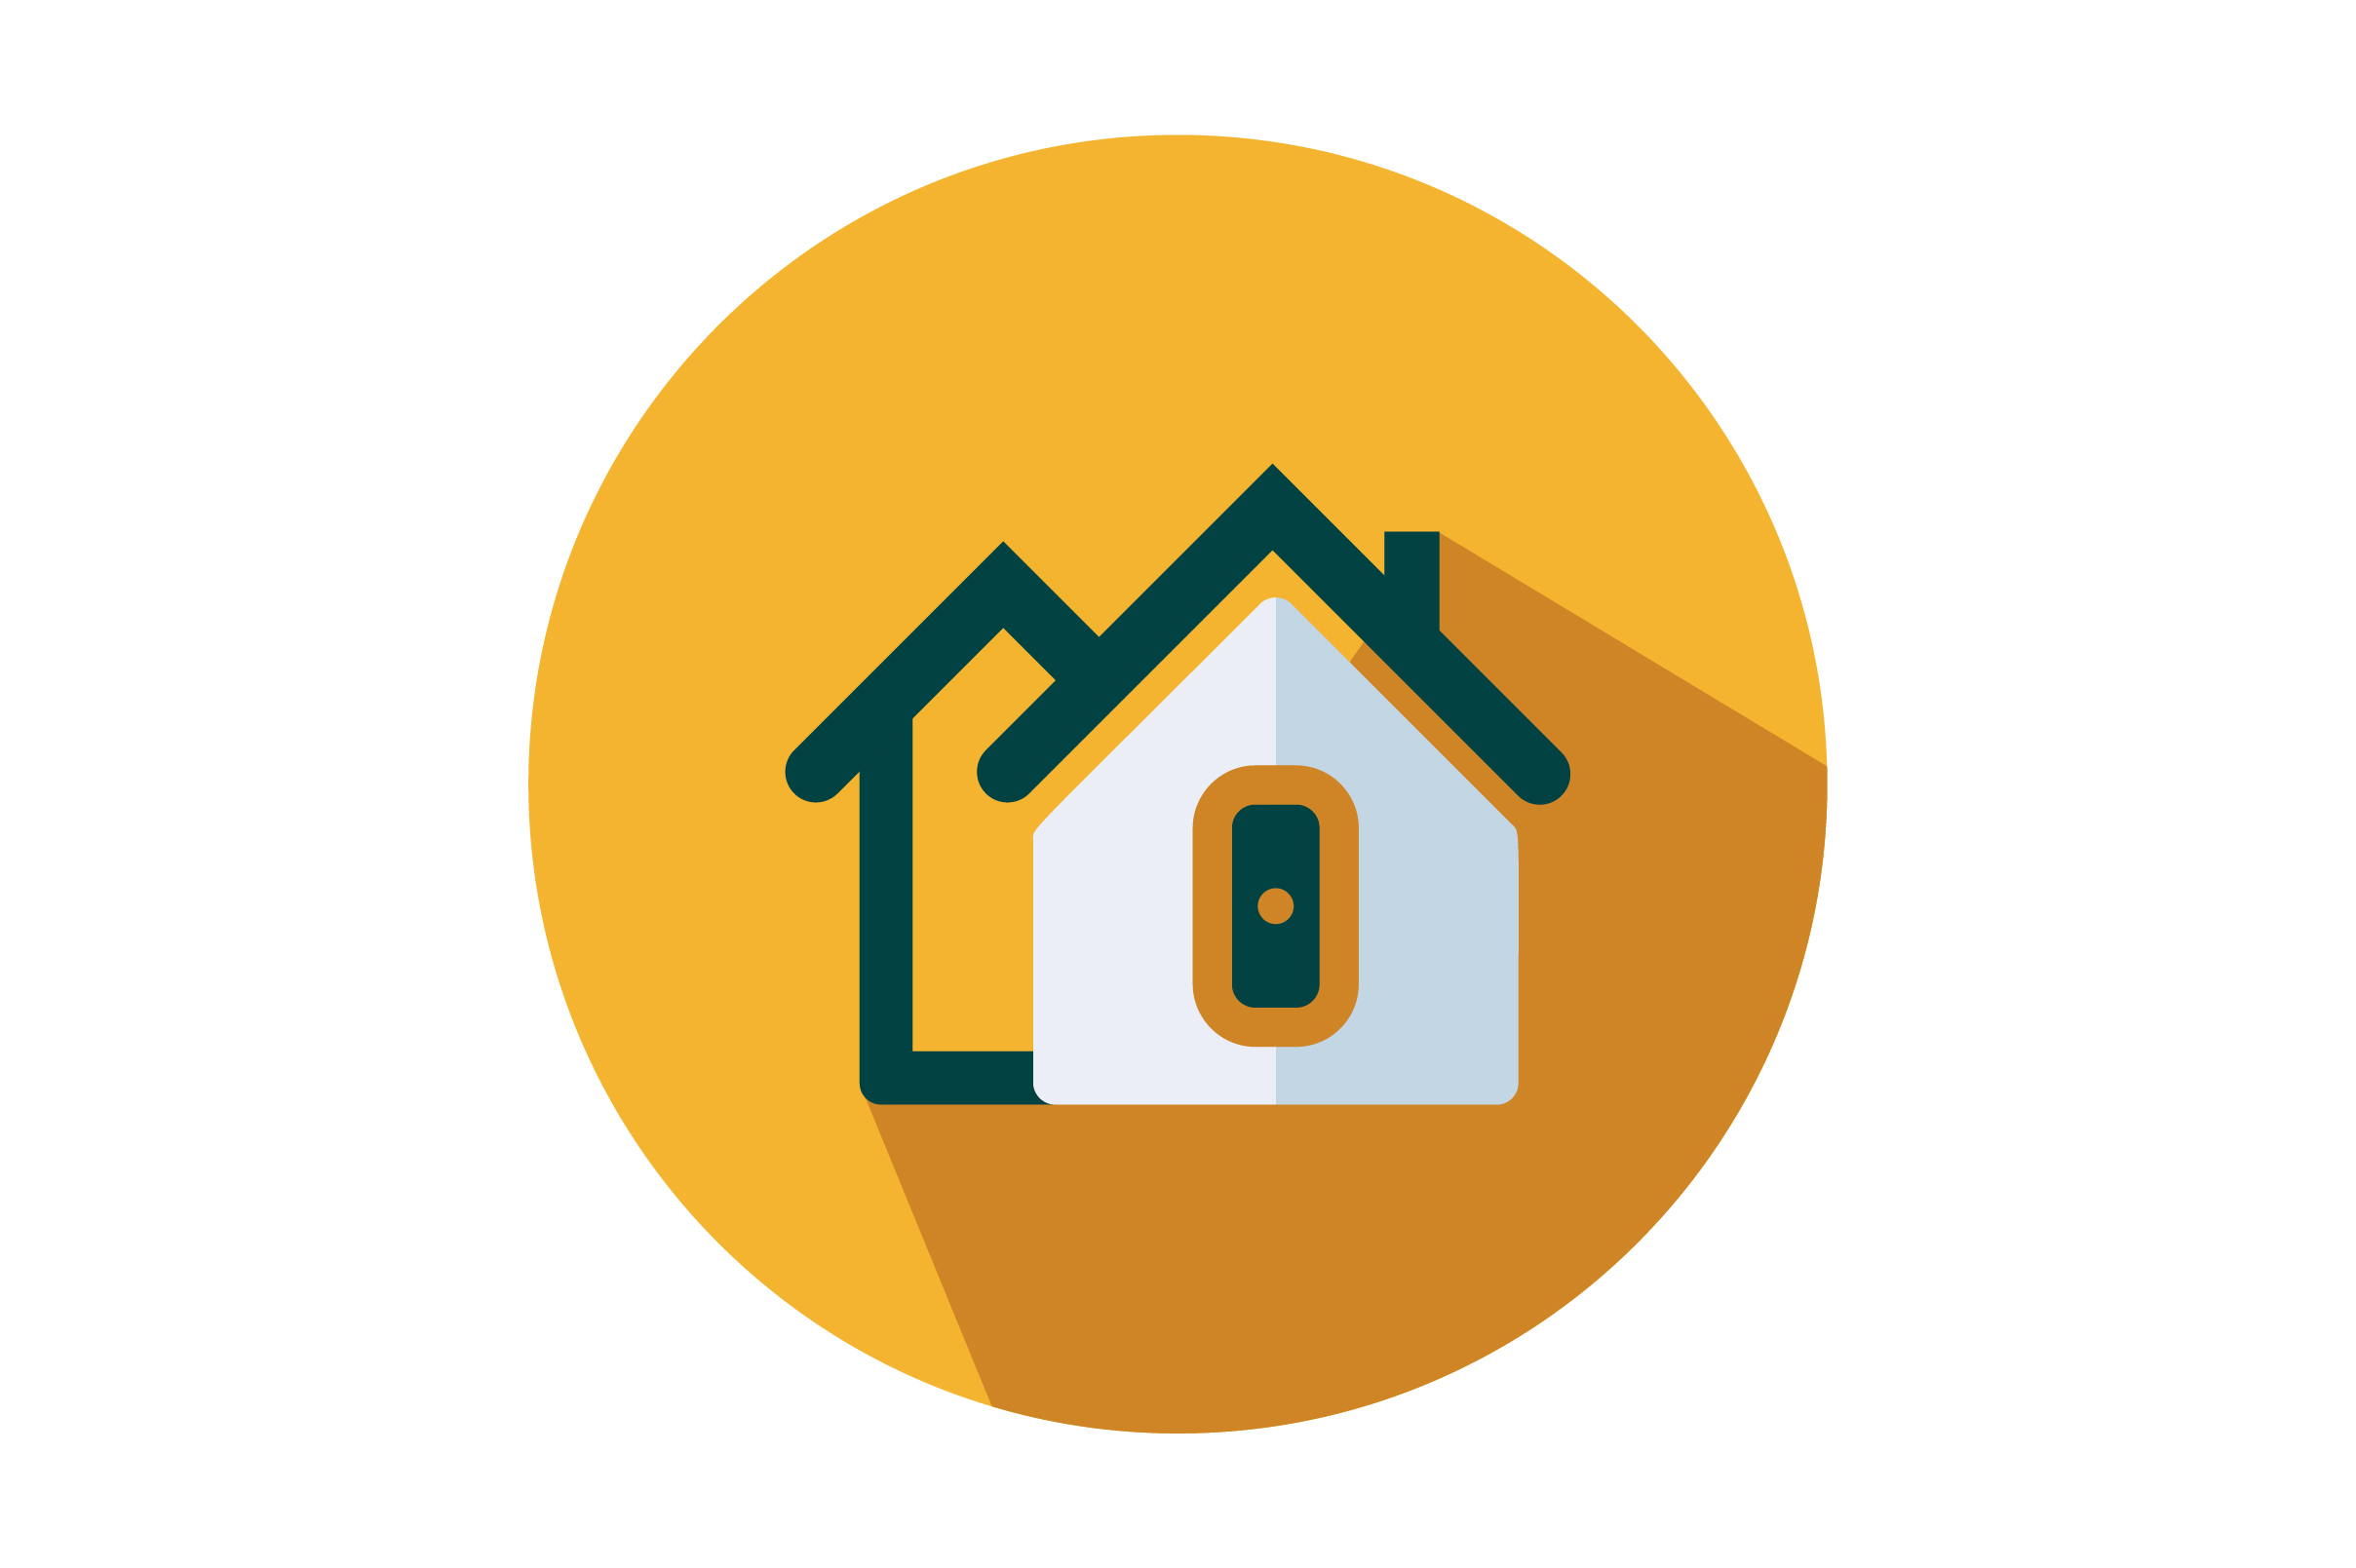 Download Free Real Estate Home Flat Vector Icon Graphic By Riduwan Molla for Cricut Explore, Silhouette and other cutting machines.